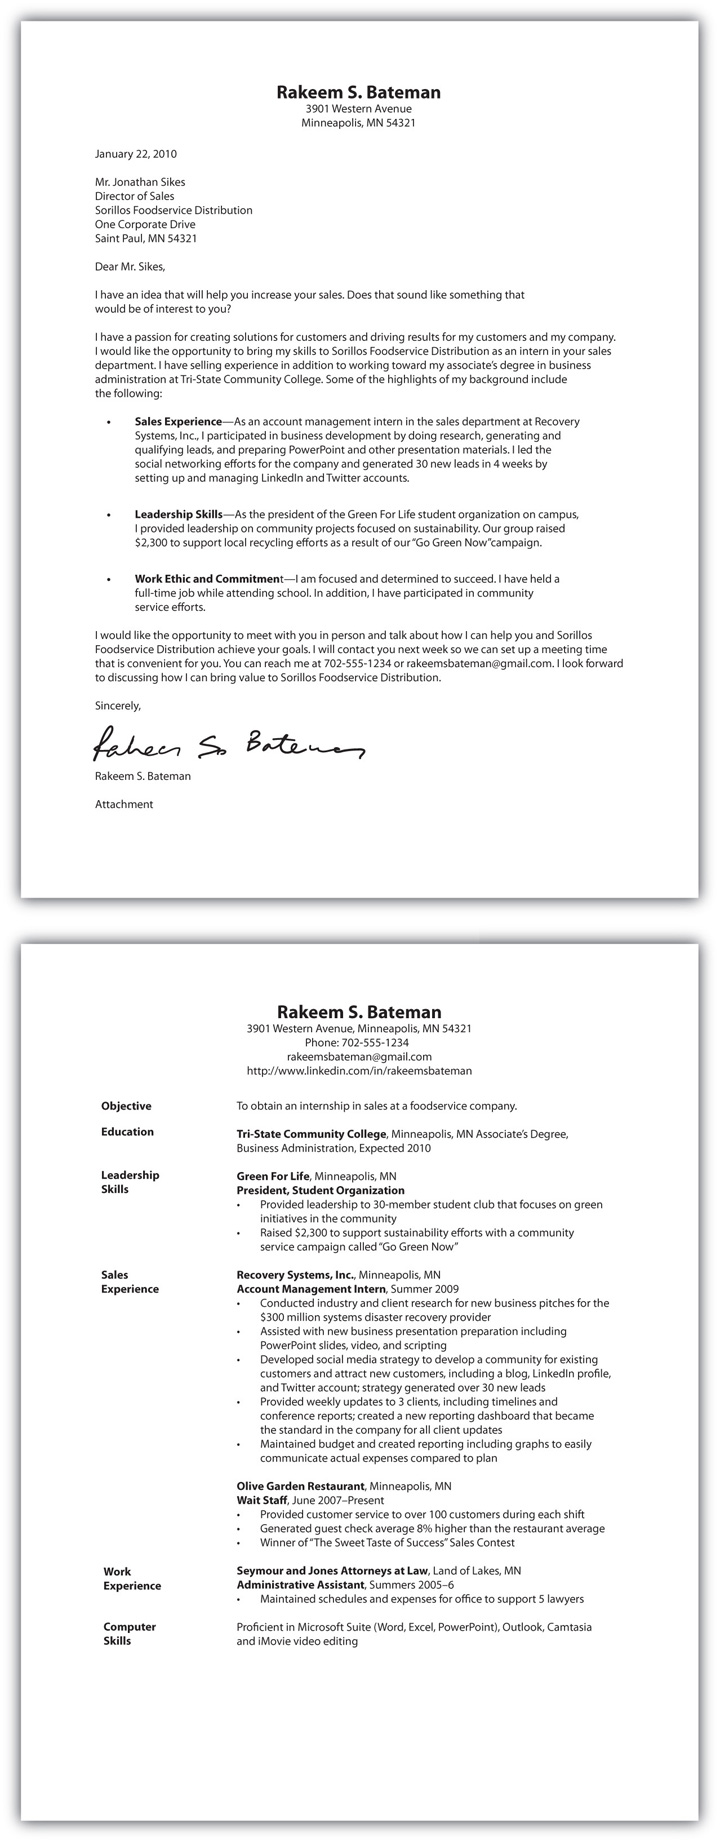 sample cover letter and resume in one document - Acur.lunamedia.co